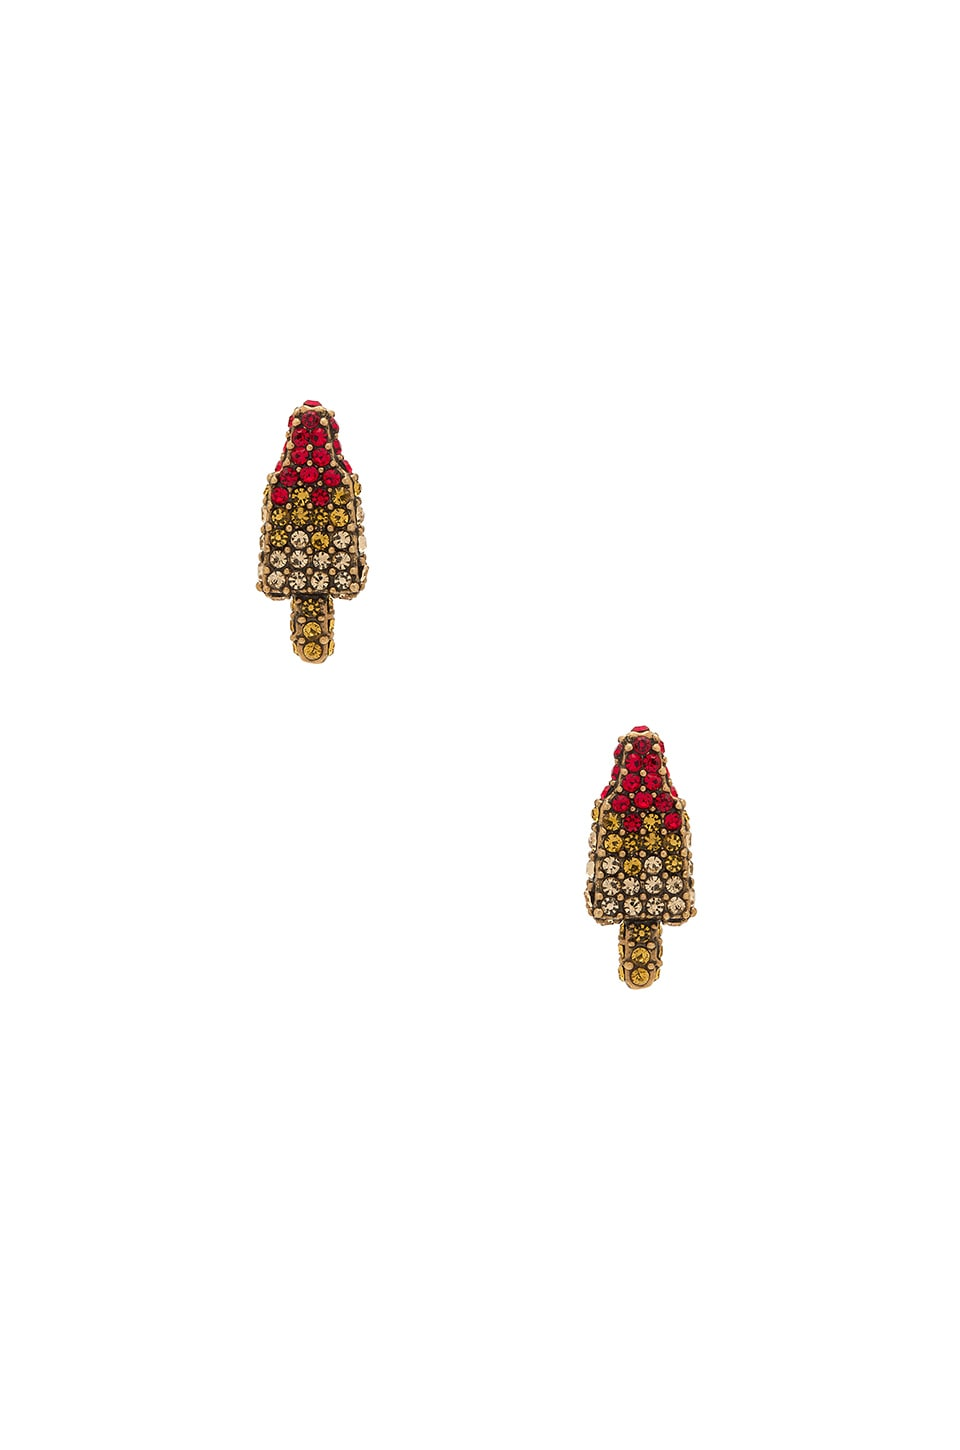 Rocket Lolli Studs by Marc Jacobs